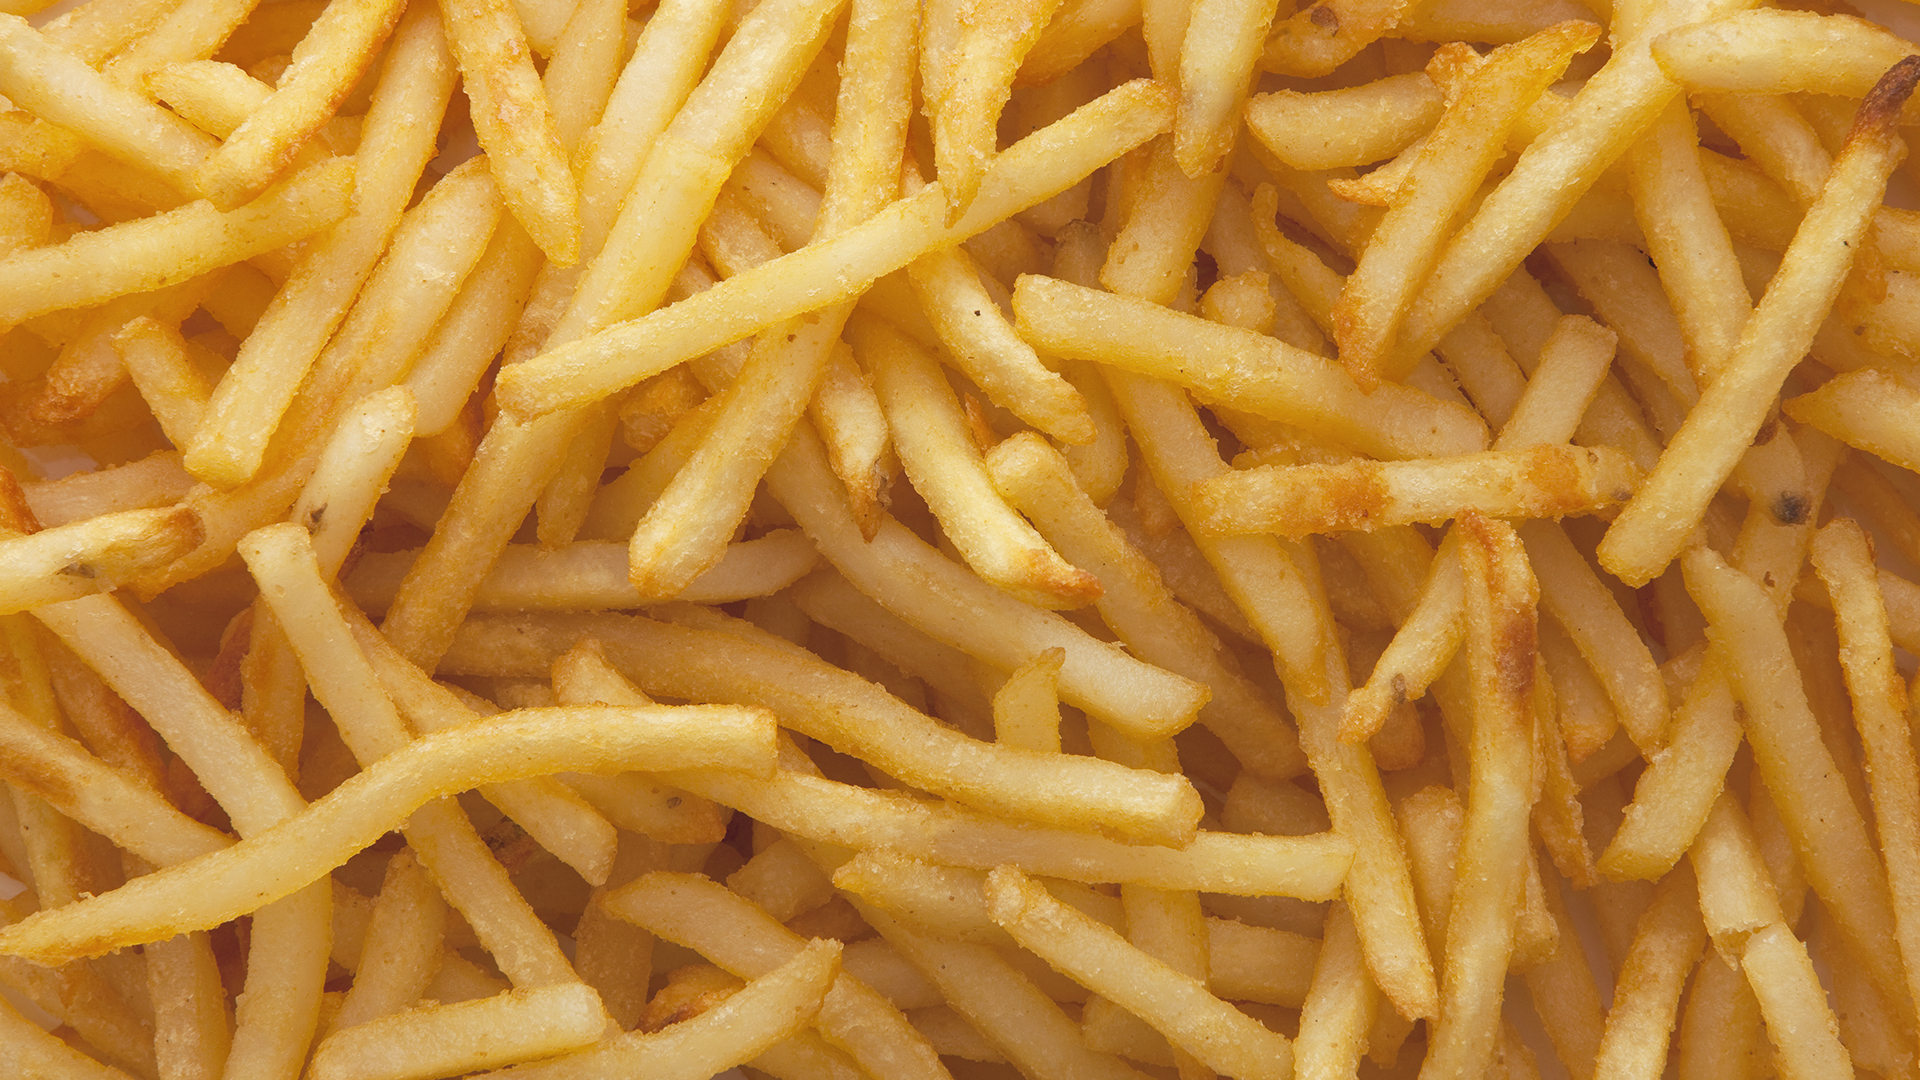 French fry ranking list goes viral on social media - TODAY.com